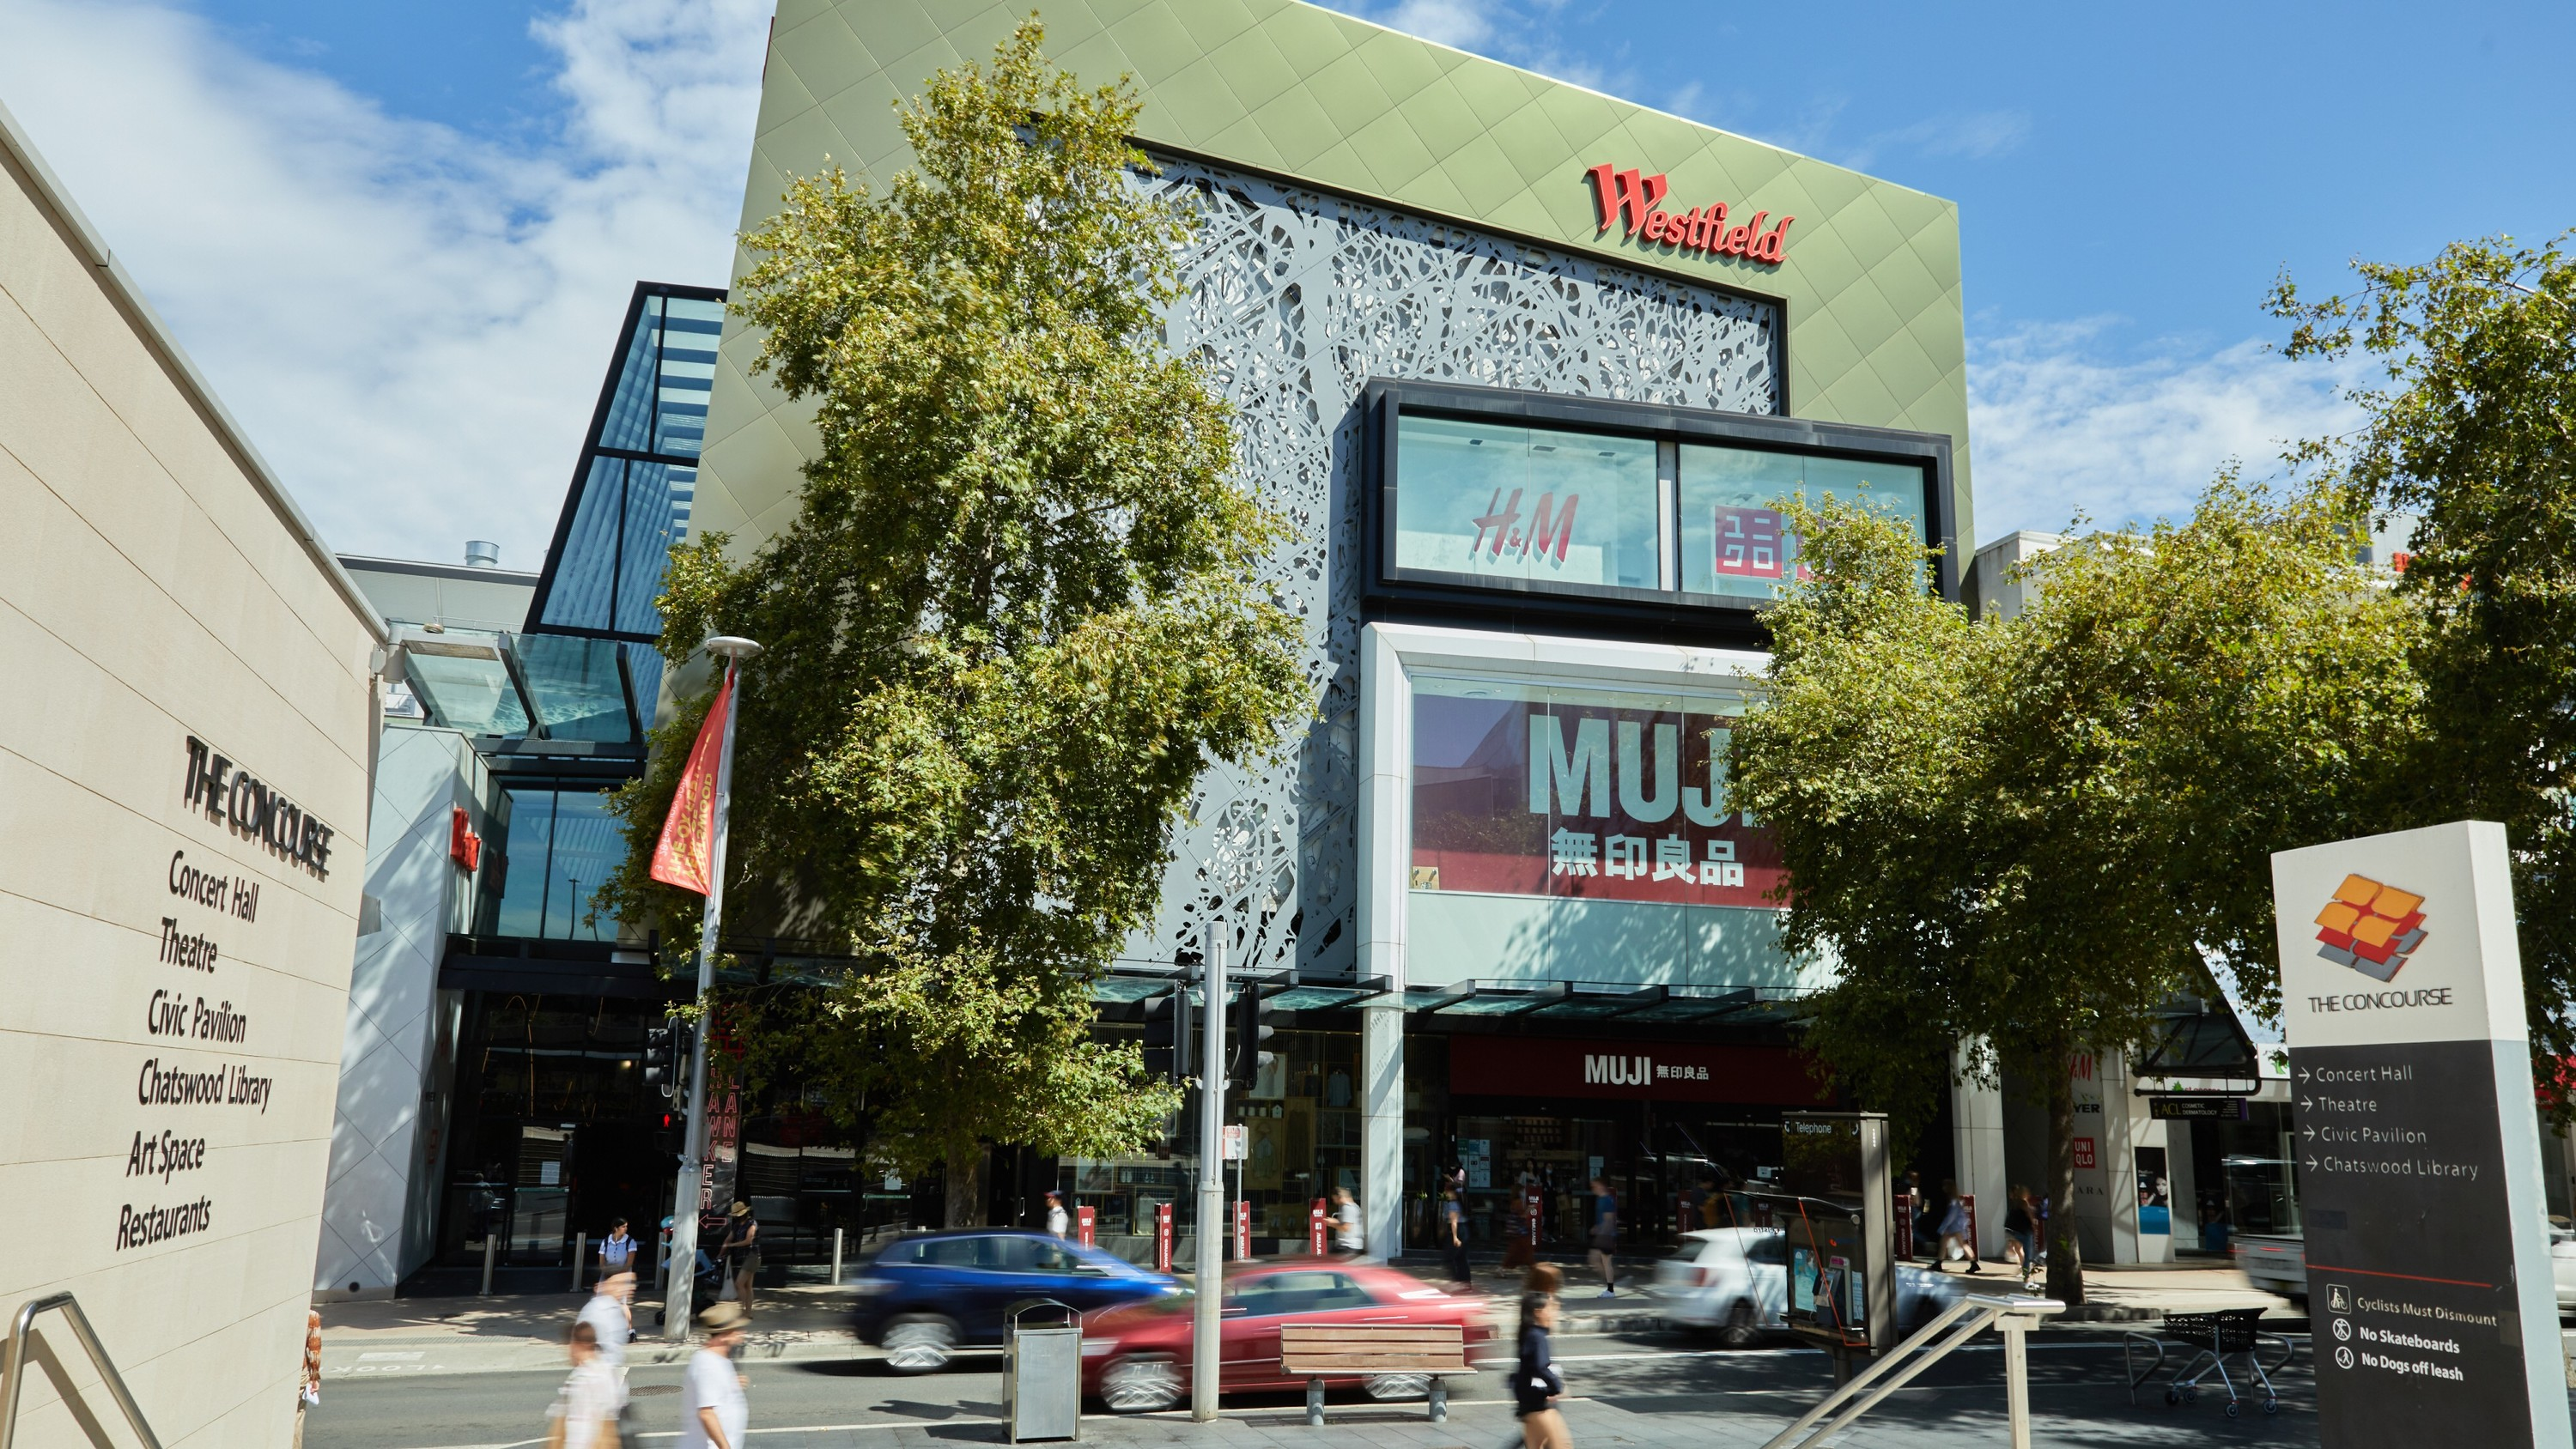 City centre with Muji store